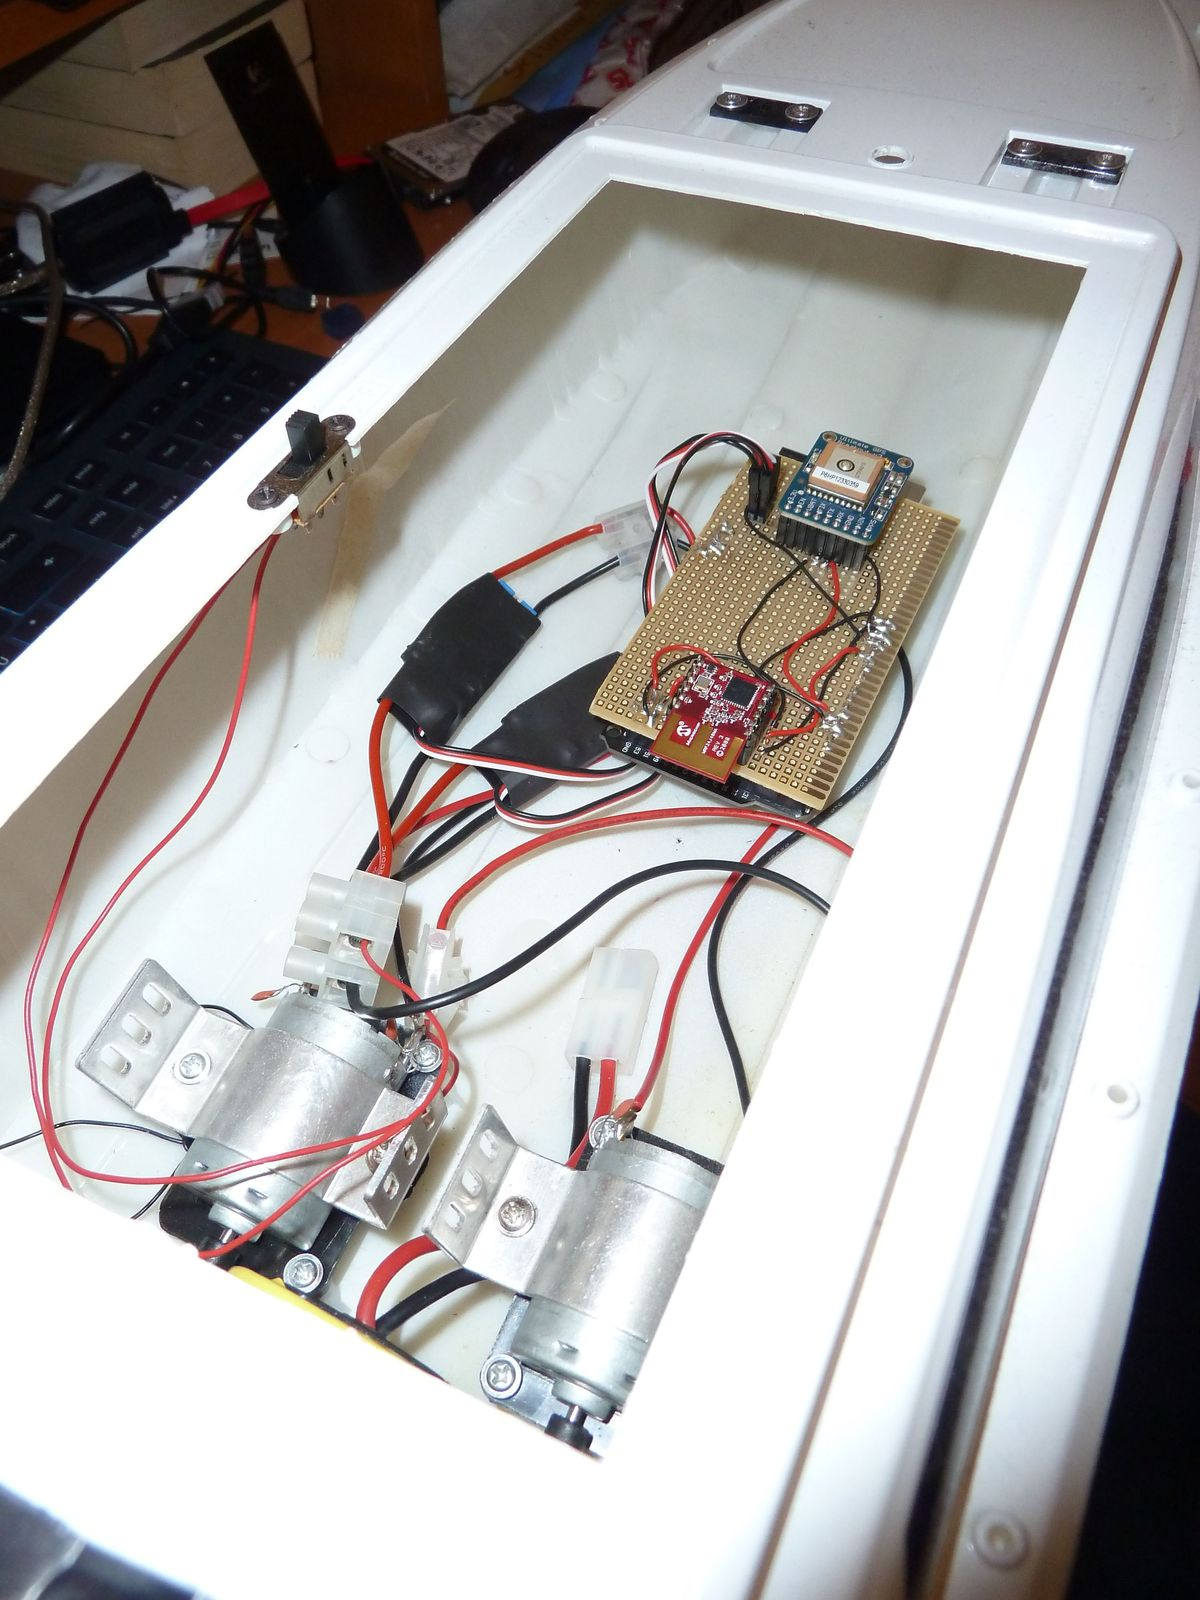 remote temperature sensor with Rc Boat Autopilot on 33 Arduino As Raspberry Pi S Remote Io Codesys further Sale 8582450 China Cheap Sanitary Mag ic Tri Cl  All Stainless Steel Flow Meter further Daikin York Panasonic Sanyo Universal C Remote Chunghop K 1028e Hwaleetrading 170042107 2016 11 Sale P as well C4mh00147h in addition 16 IO DO DI Relay Board  work Wi FiRJ45RS232 Relay Modbus TCP Module Smart Home Phone Control IOT DDNS Switch Demo Code.